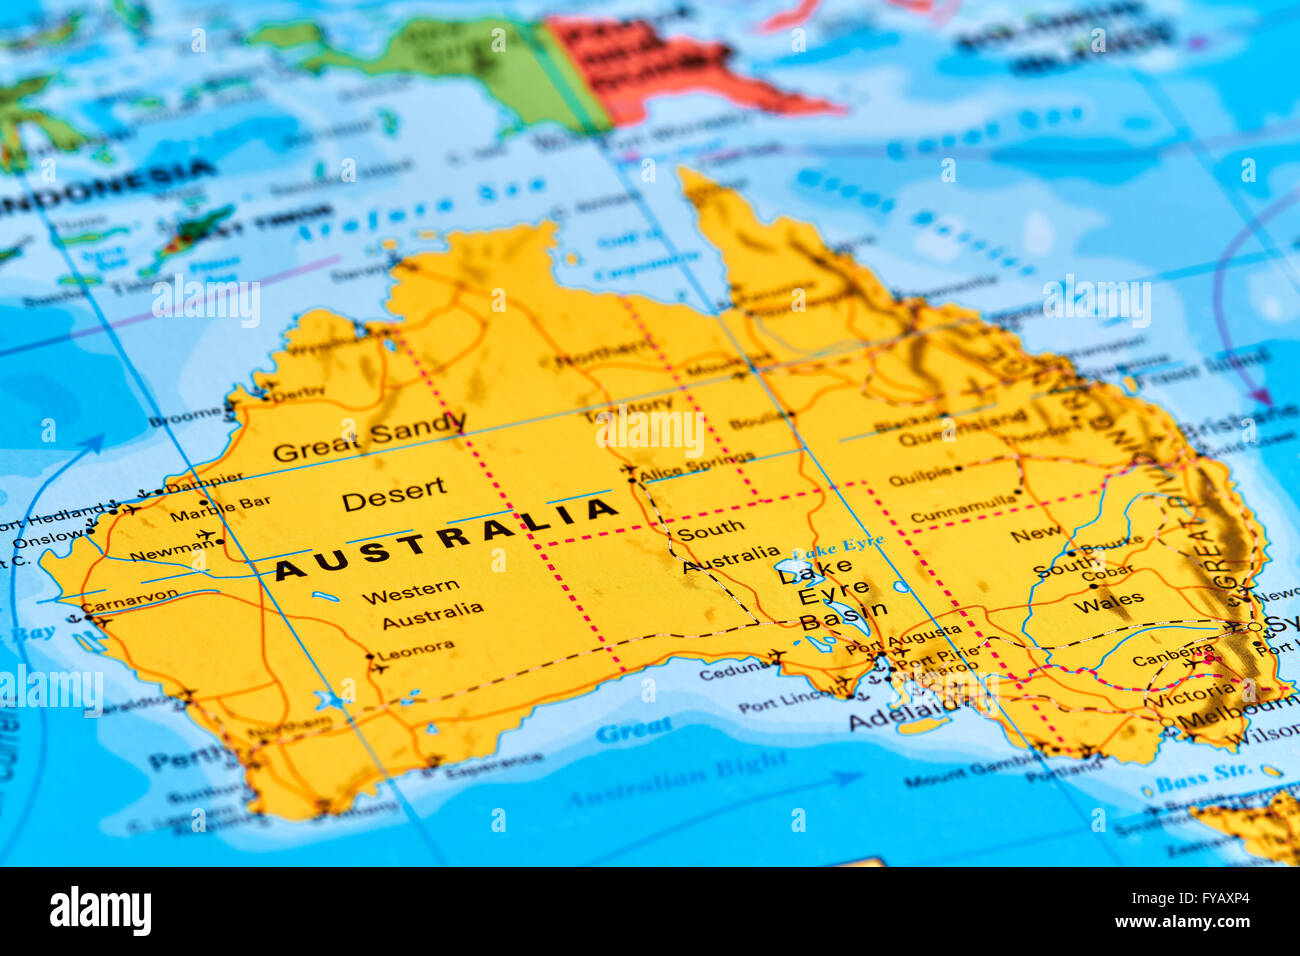 Australia Continent and Country on the World Map Stock Photo ...